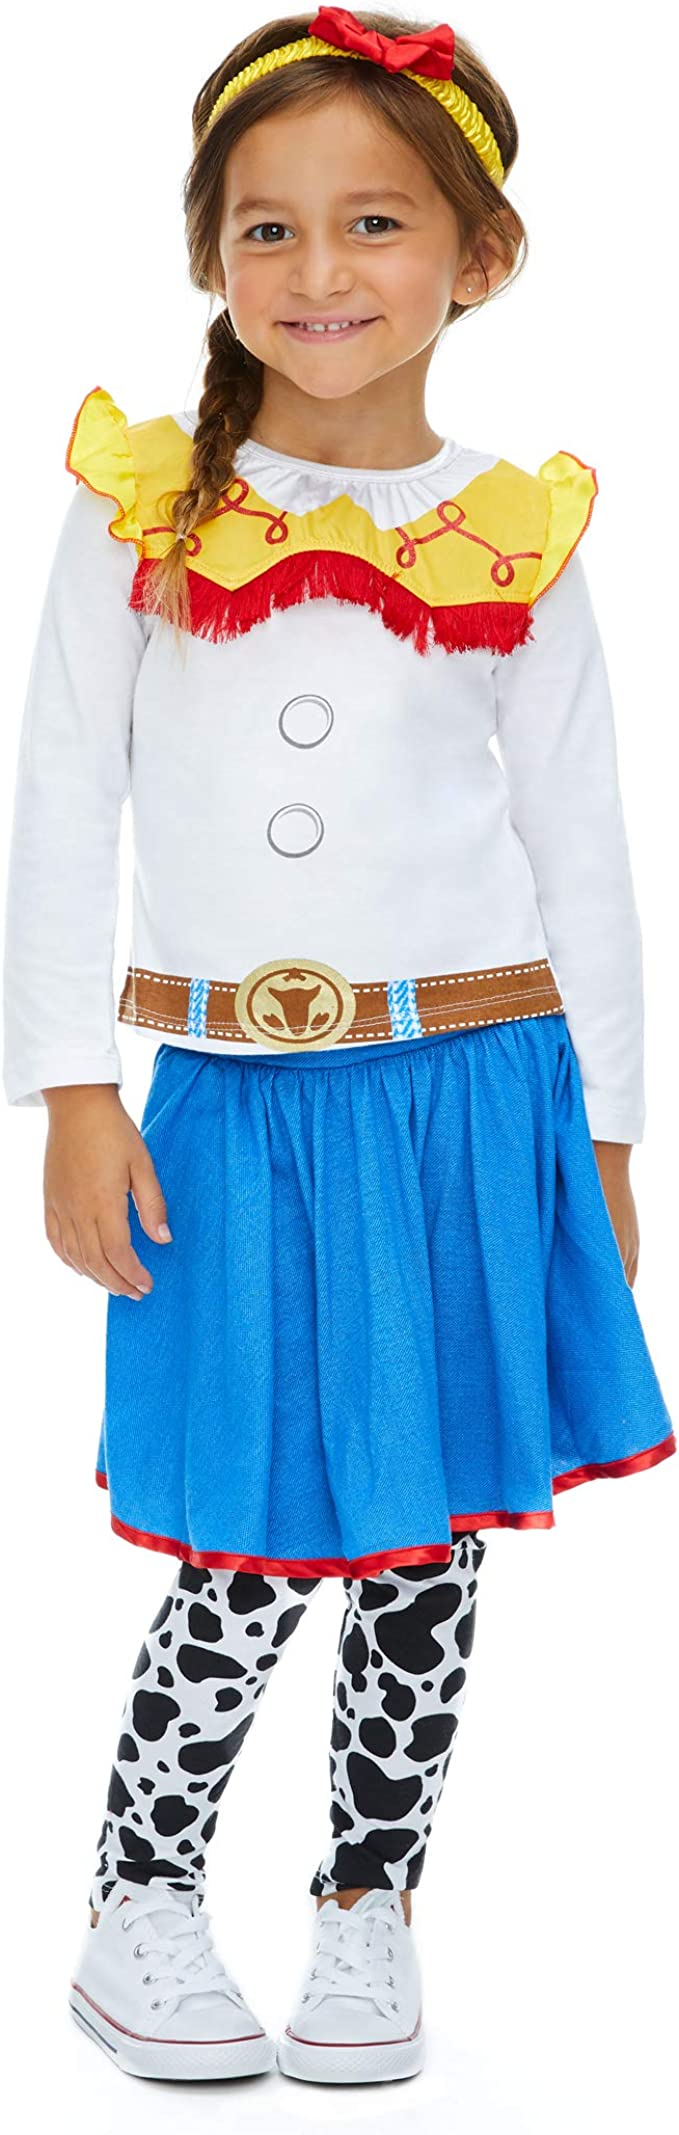 Disney Princess Jasmine Girls Costume Dress Tights & Headband Set ...